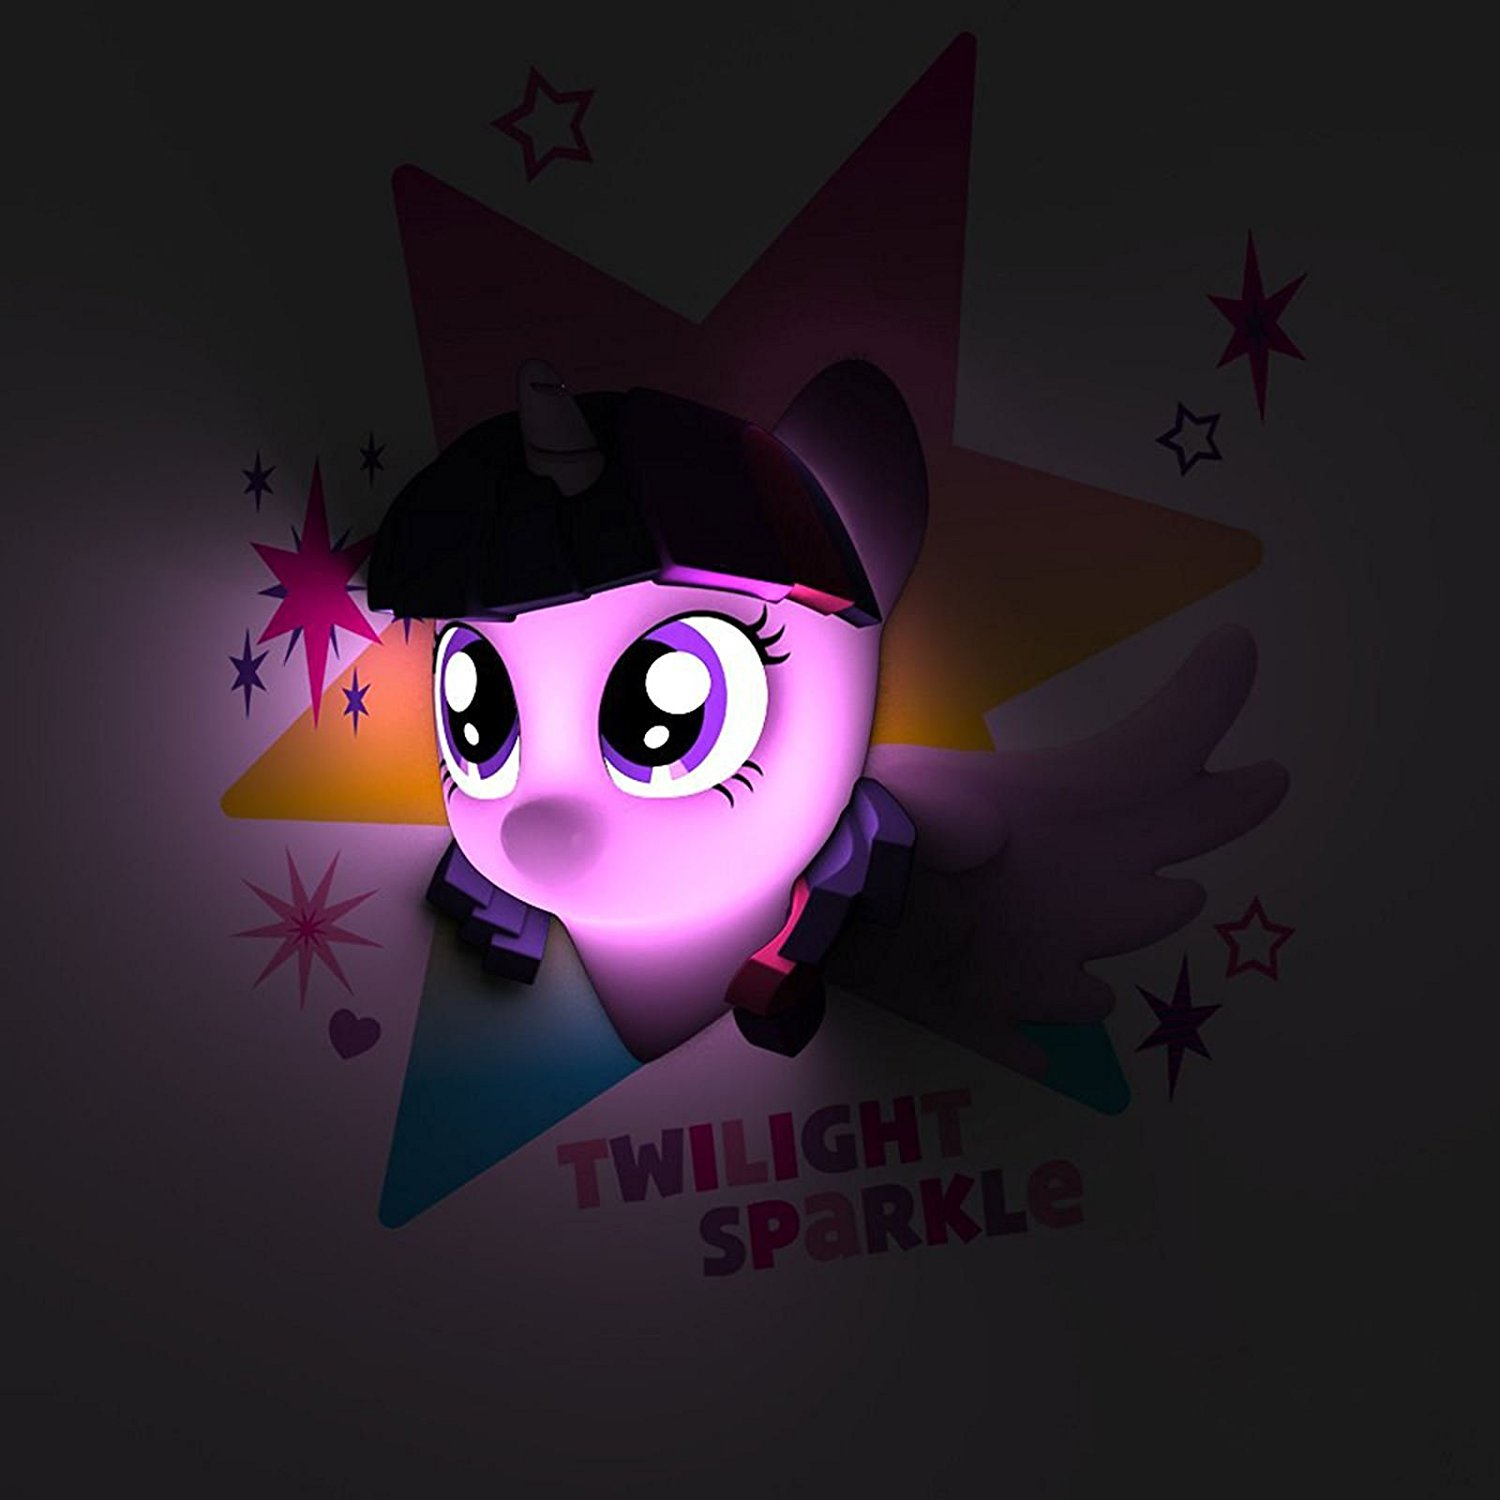 Cool  My Little Pony D Wall Deco Light Twilight Sparkle